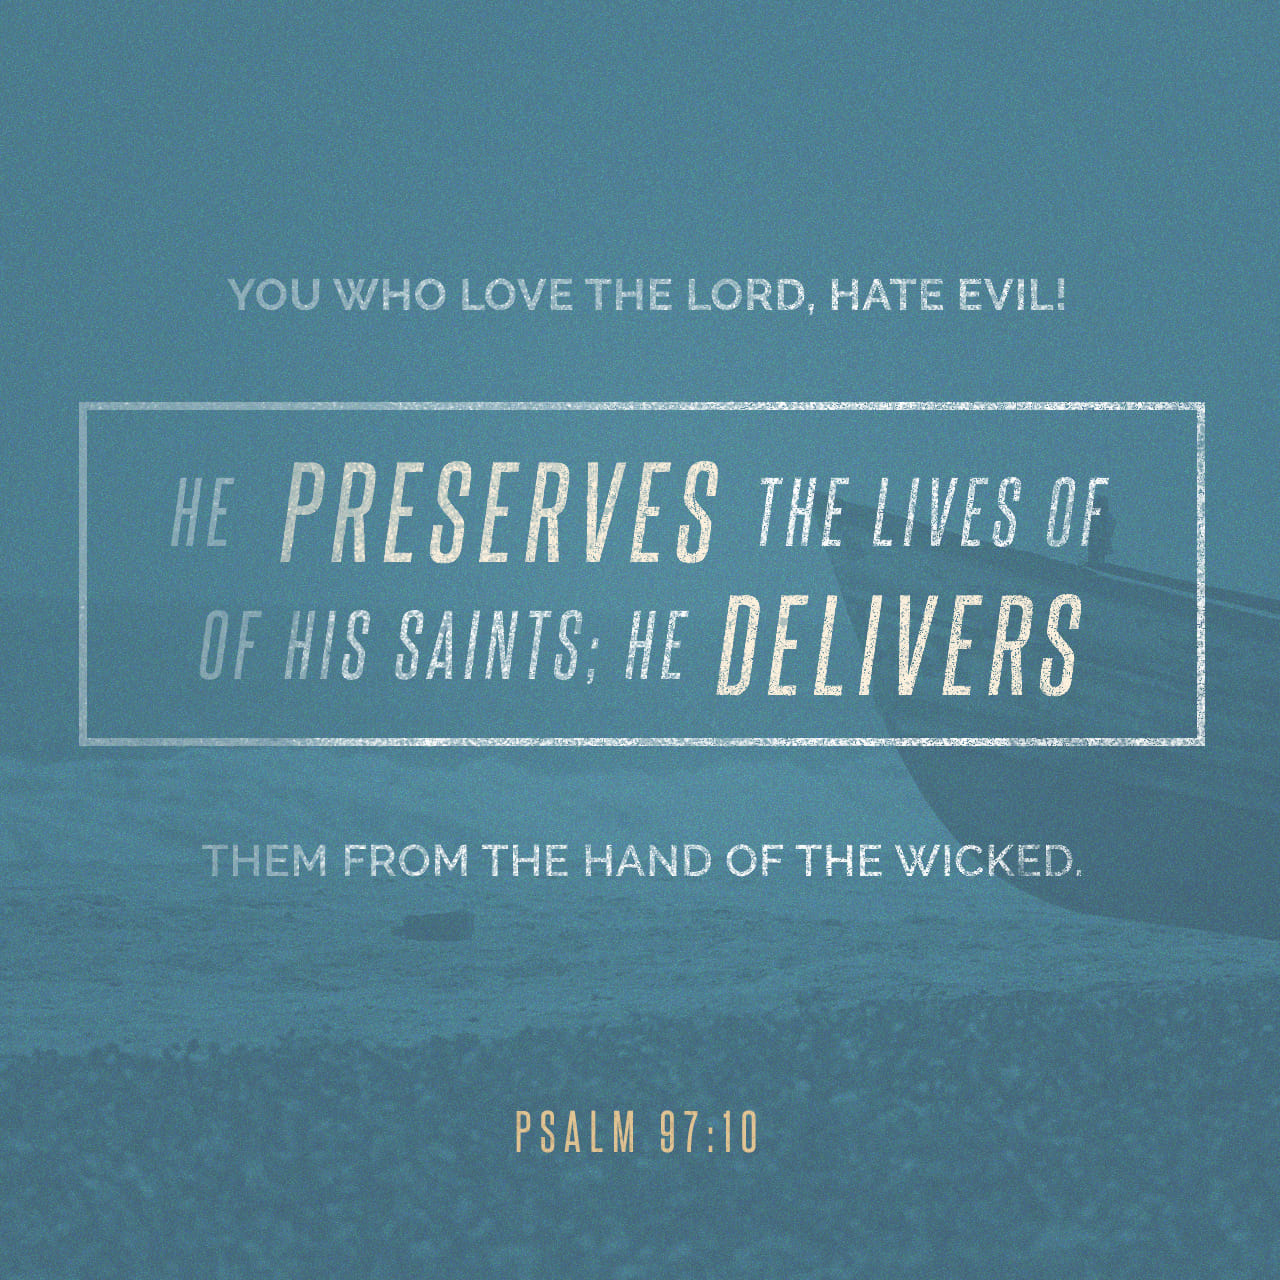 Psalms 97:10 Ye that love the LORD, hate evil: he preserveth the souls of his saints; he delivereth them out of the hand of the wicked. | King James Version (KJV)